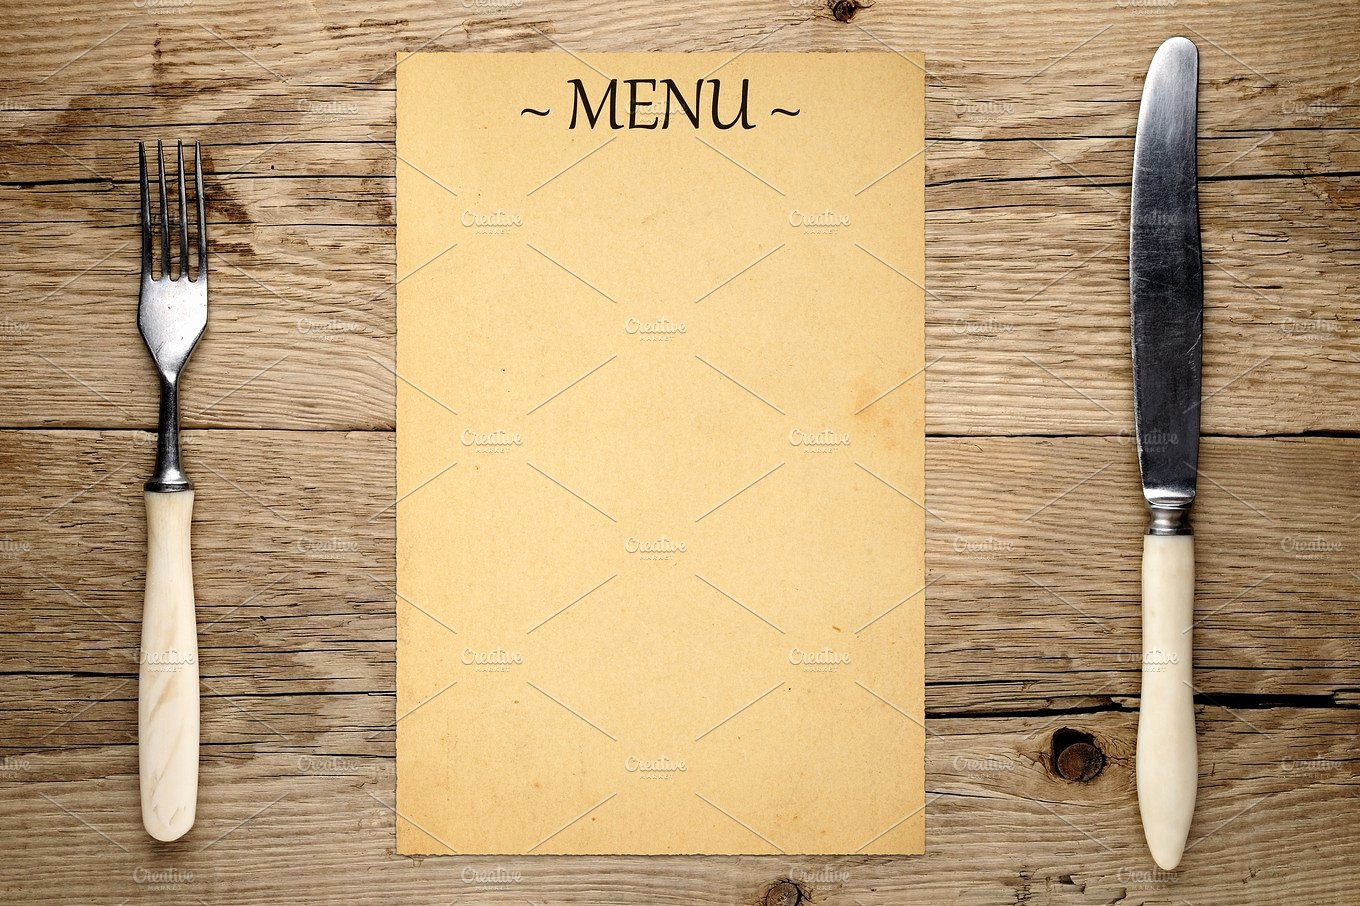 Free Catering Menu Templates Lovely 16 Blank Menu Designs Psd Vector format Download